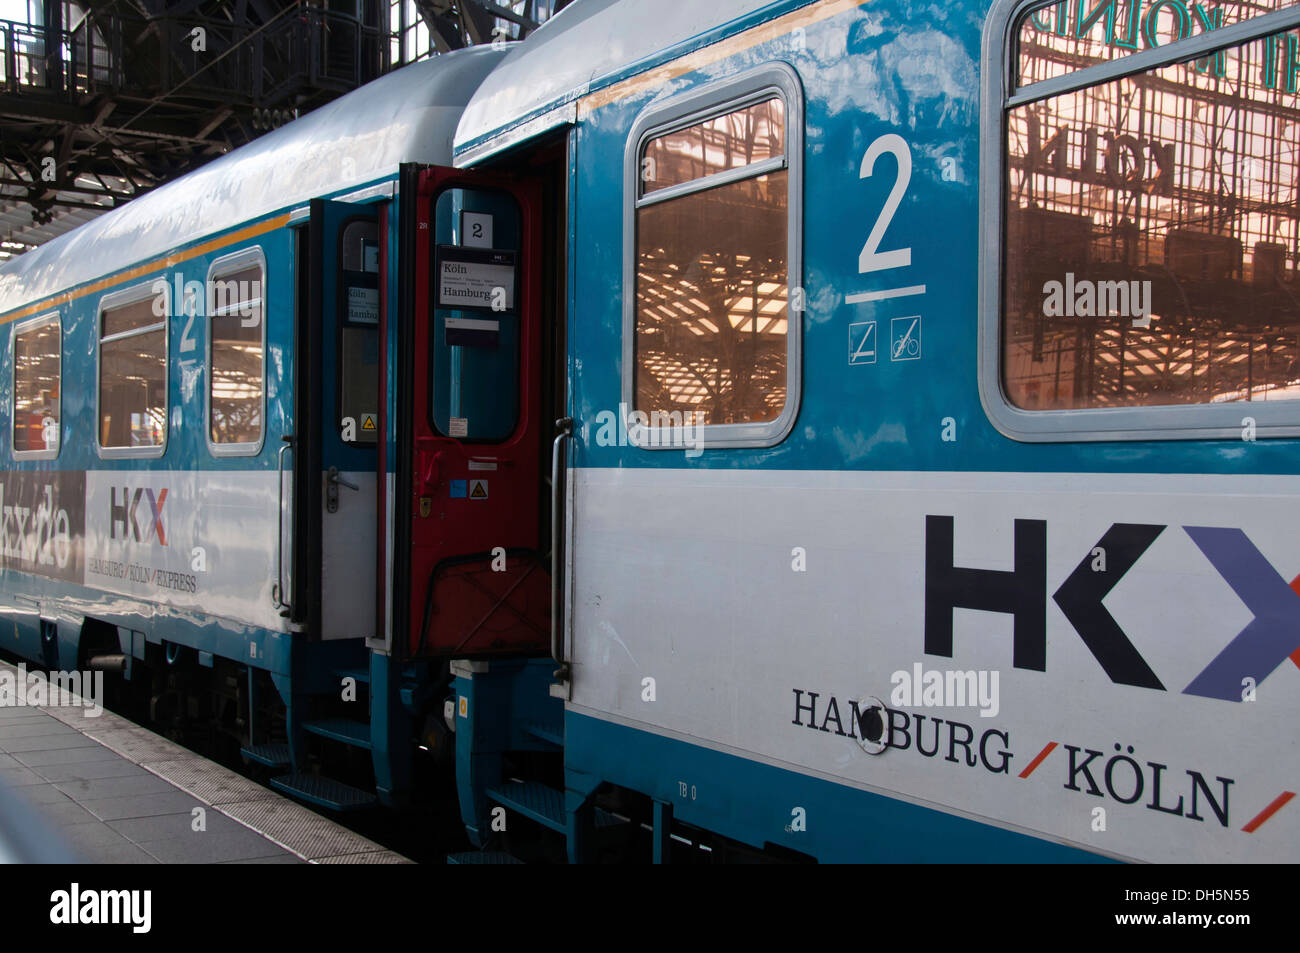 Hamburg-Koeln-Express, HKX, a private Berlin-based open-access train operating company, Cologne Central Station - Stock Image